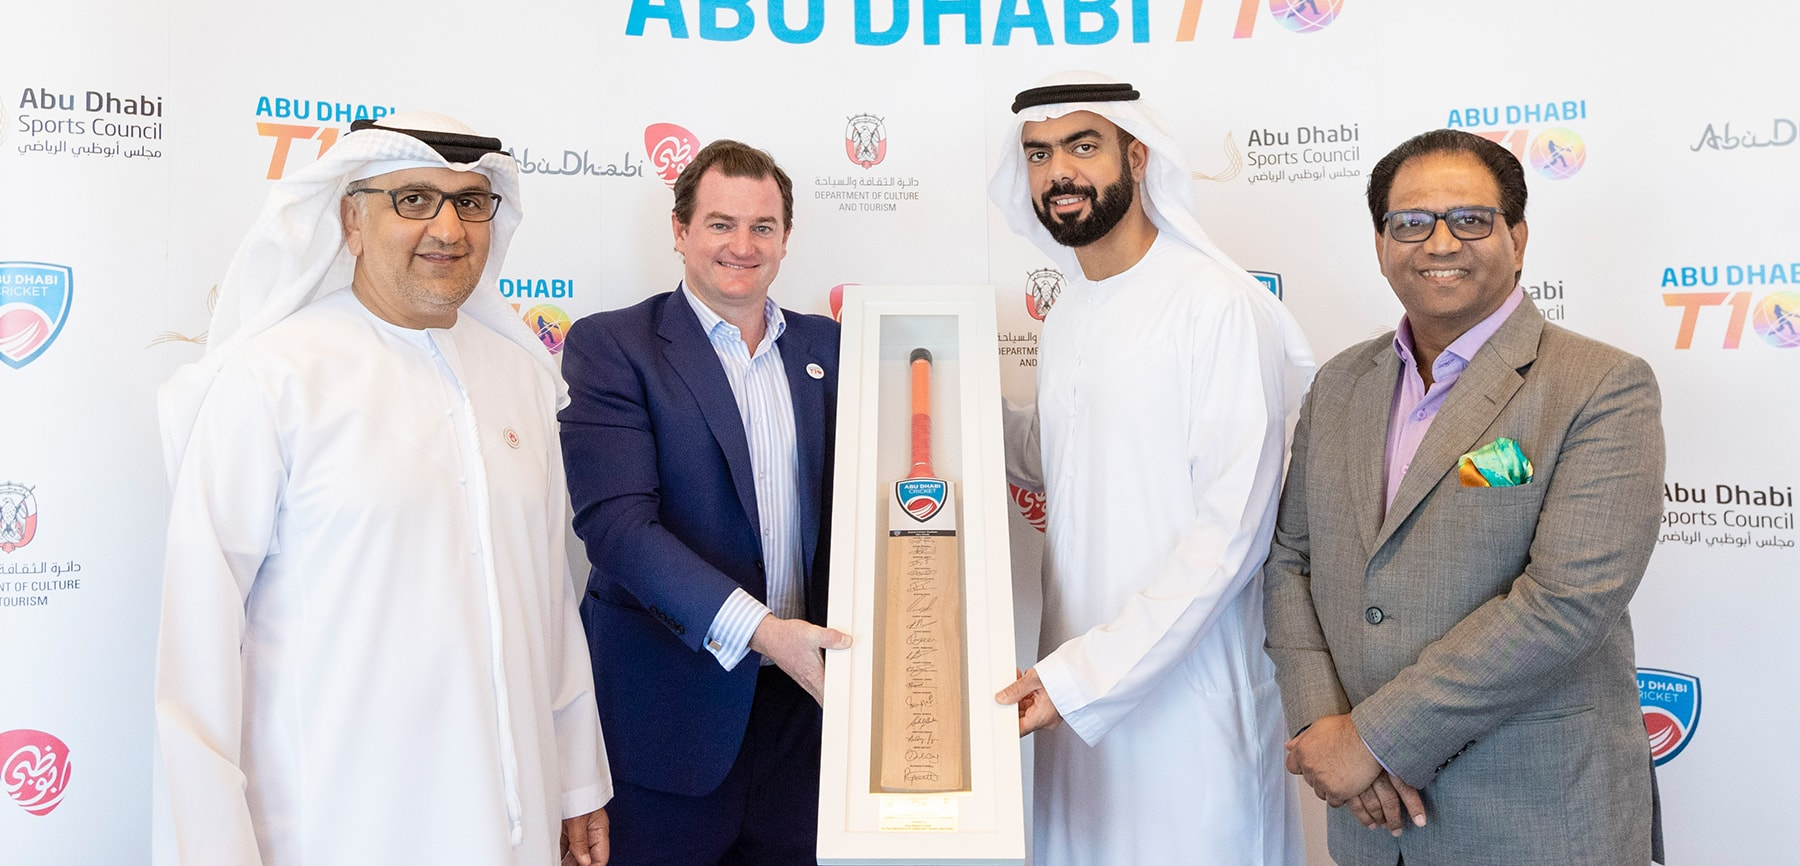 Abu Dhabi Sports Council To Sign Historic Deal To Host T10 League For 5 Years From 2019-2023